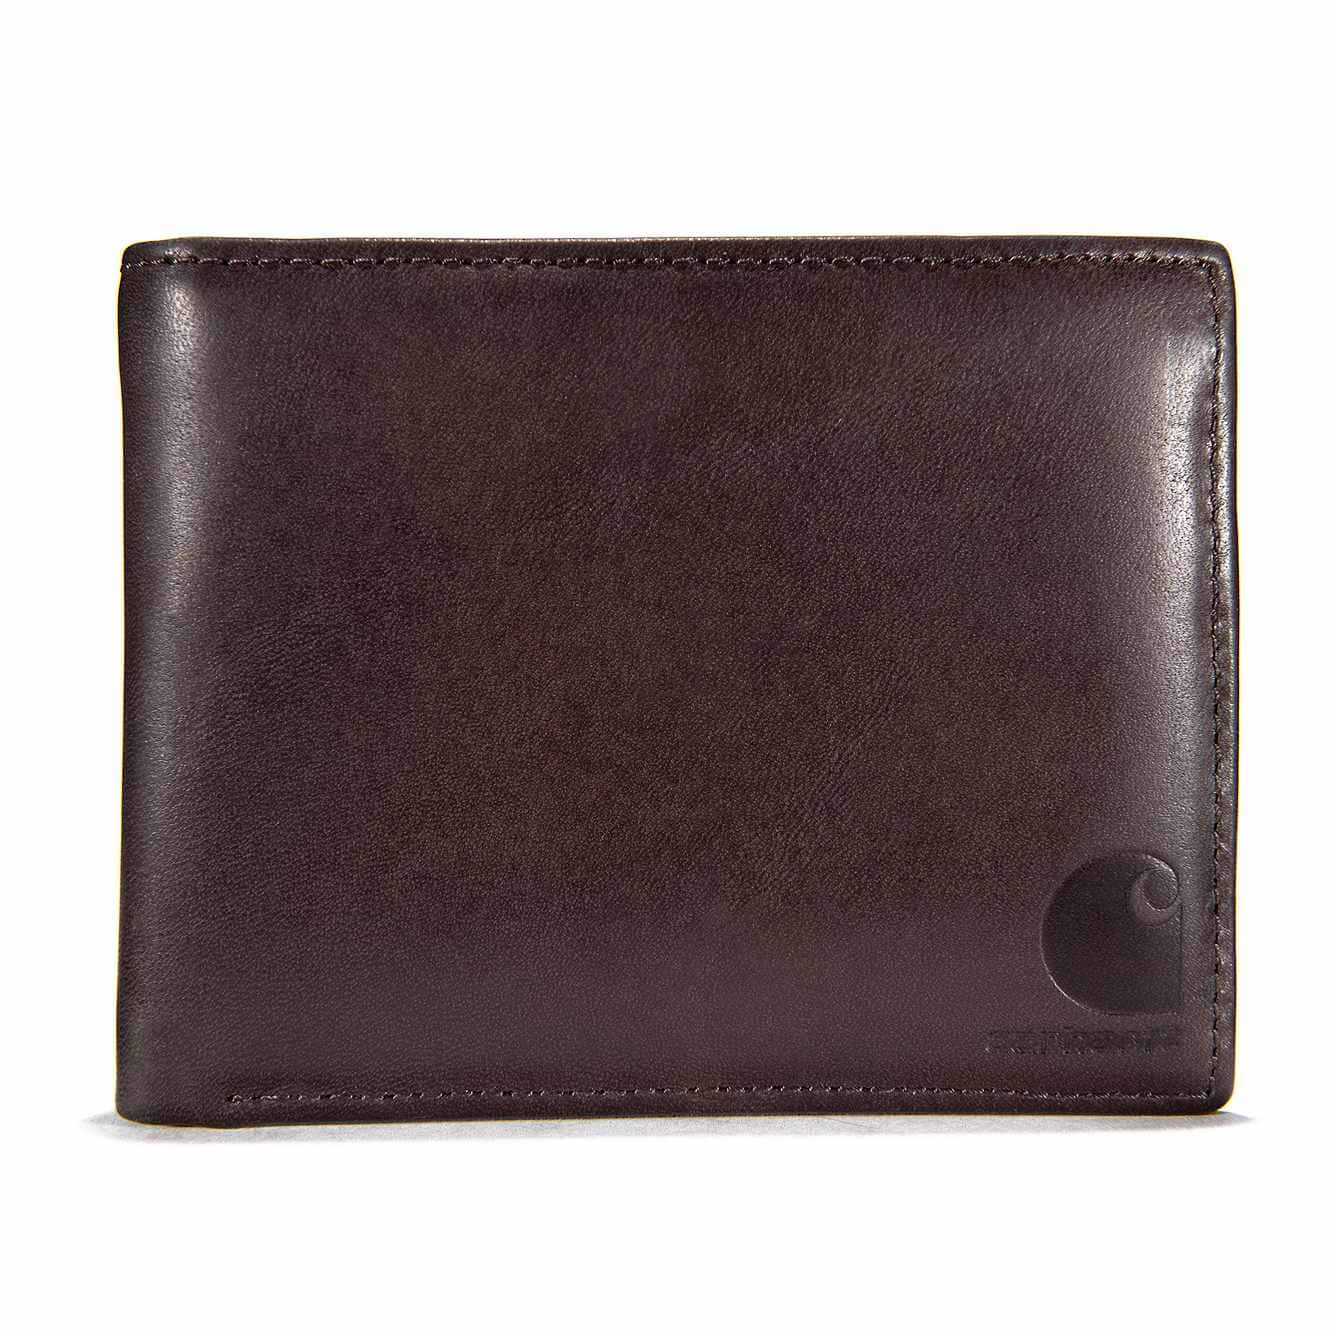 Picture of Oil Tan Passcase Wallet in Brown Oil Tanned